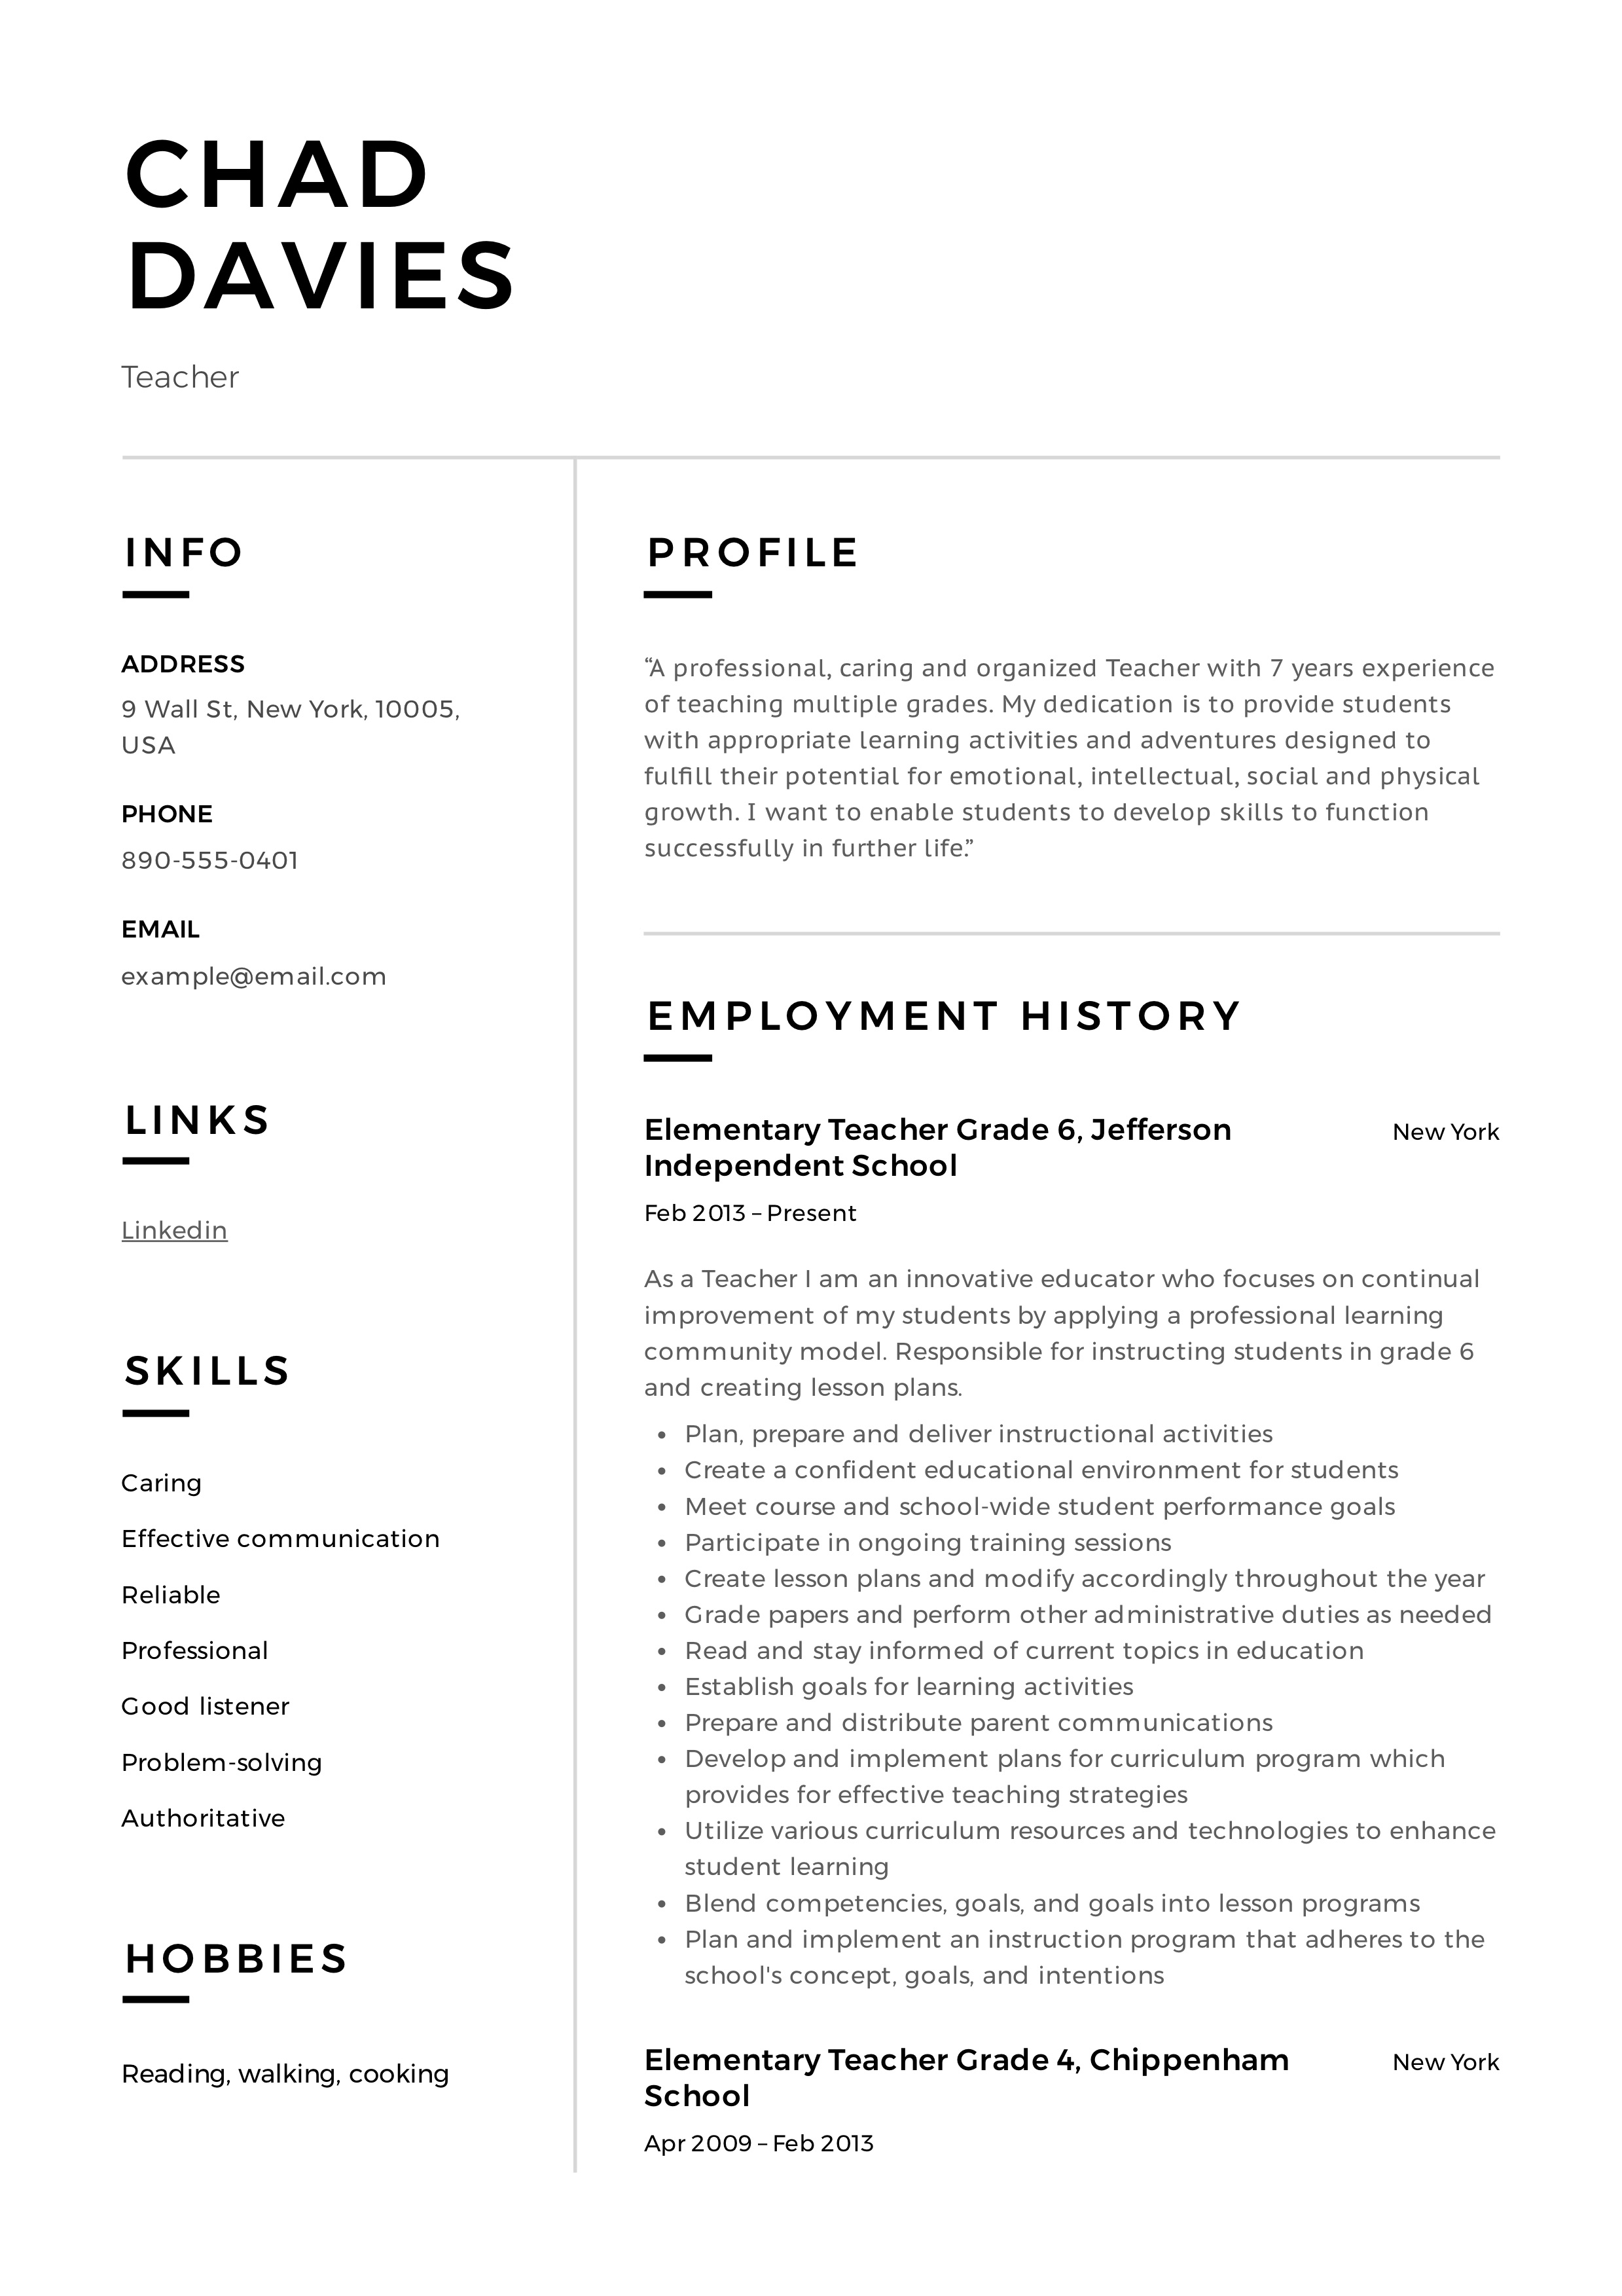 teacher resume writing guide examples pdf sample for teachers without experience Resume Resume Sample For Teachers Without Experience